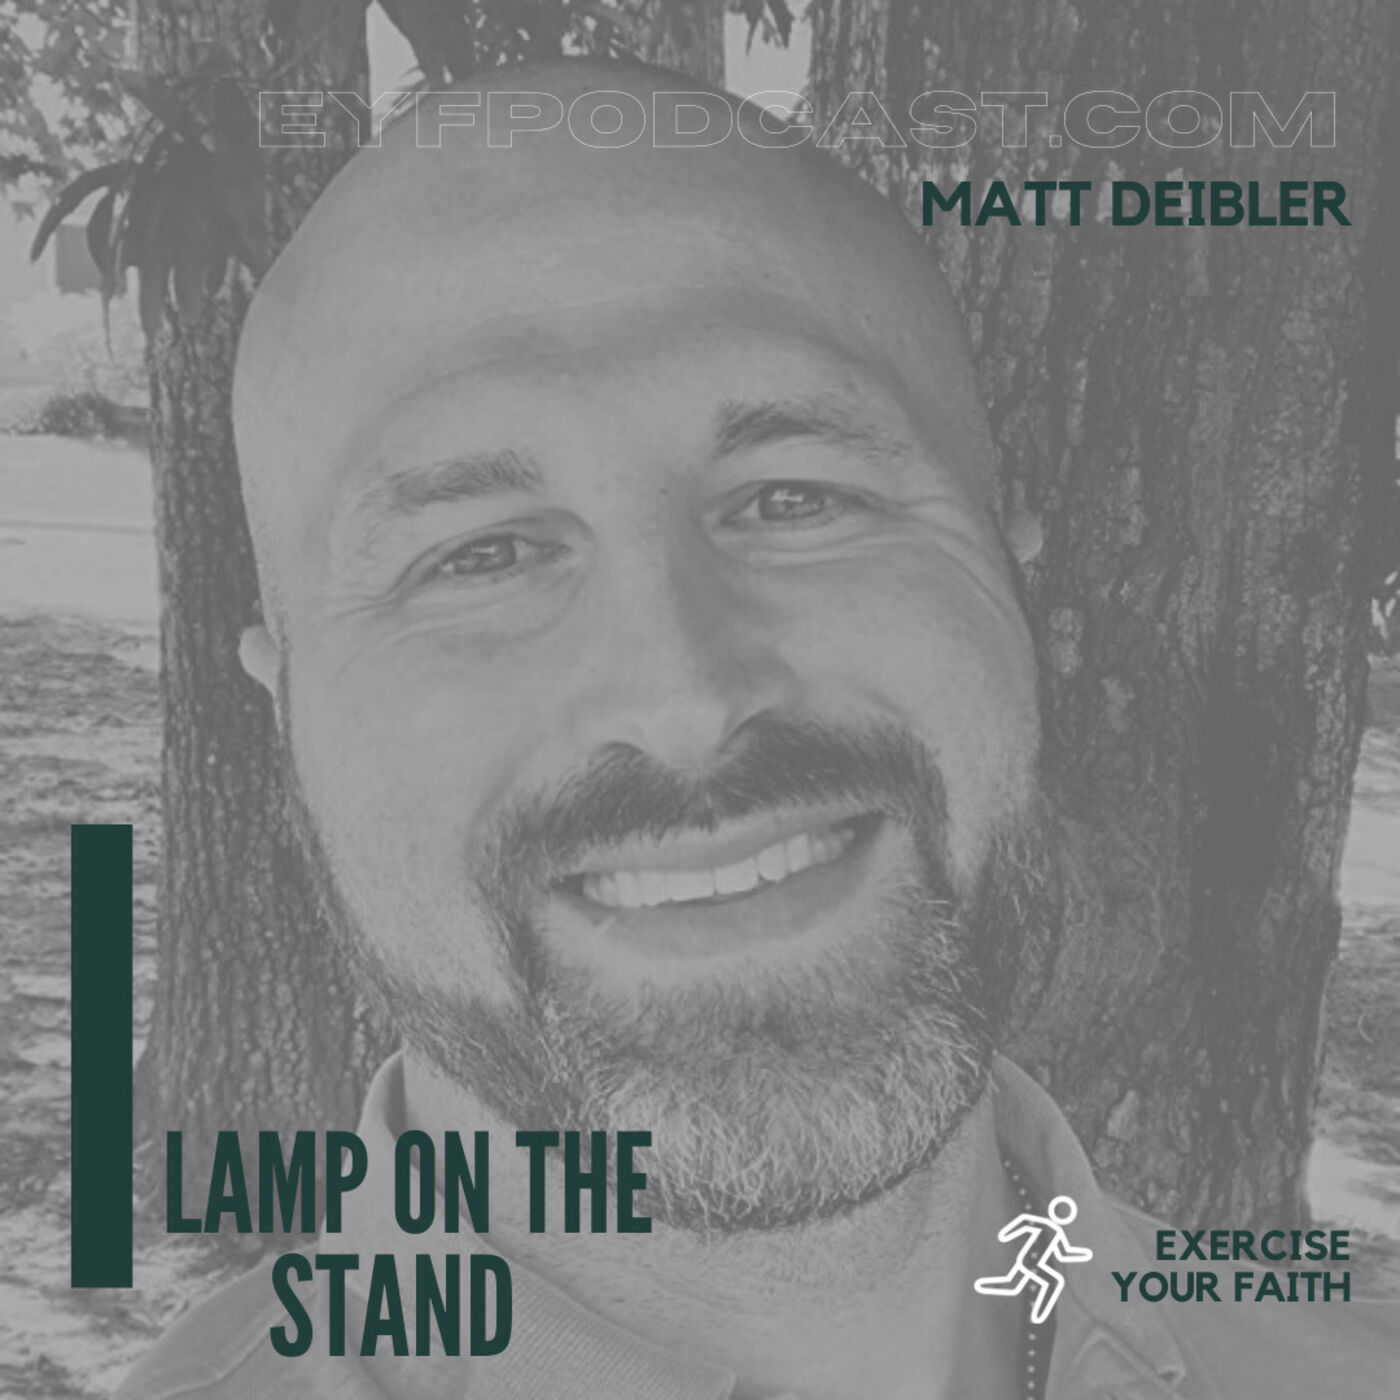 EYFPodcast- Exercise Your Faith by Letting Go, Trusting, Believing, and having Faith with Matt Deibler